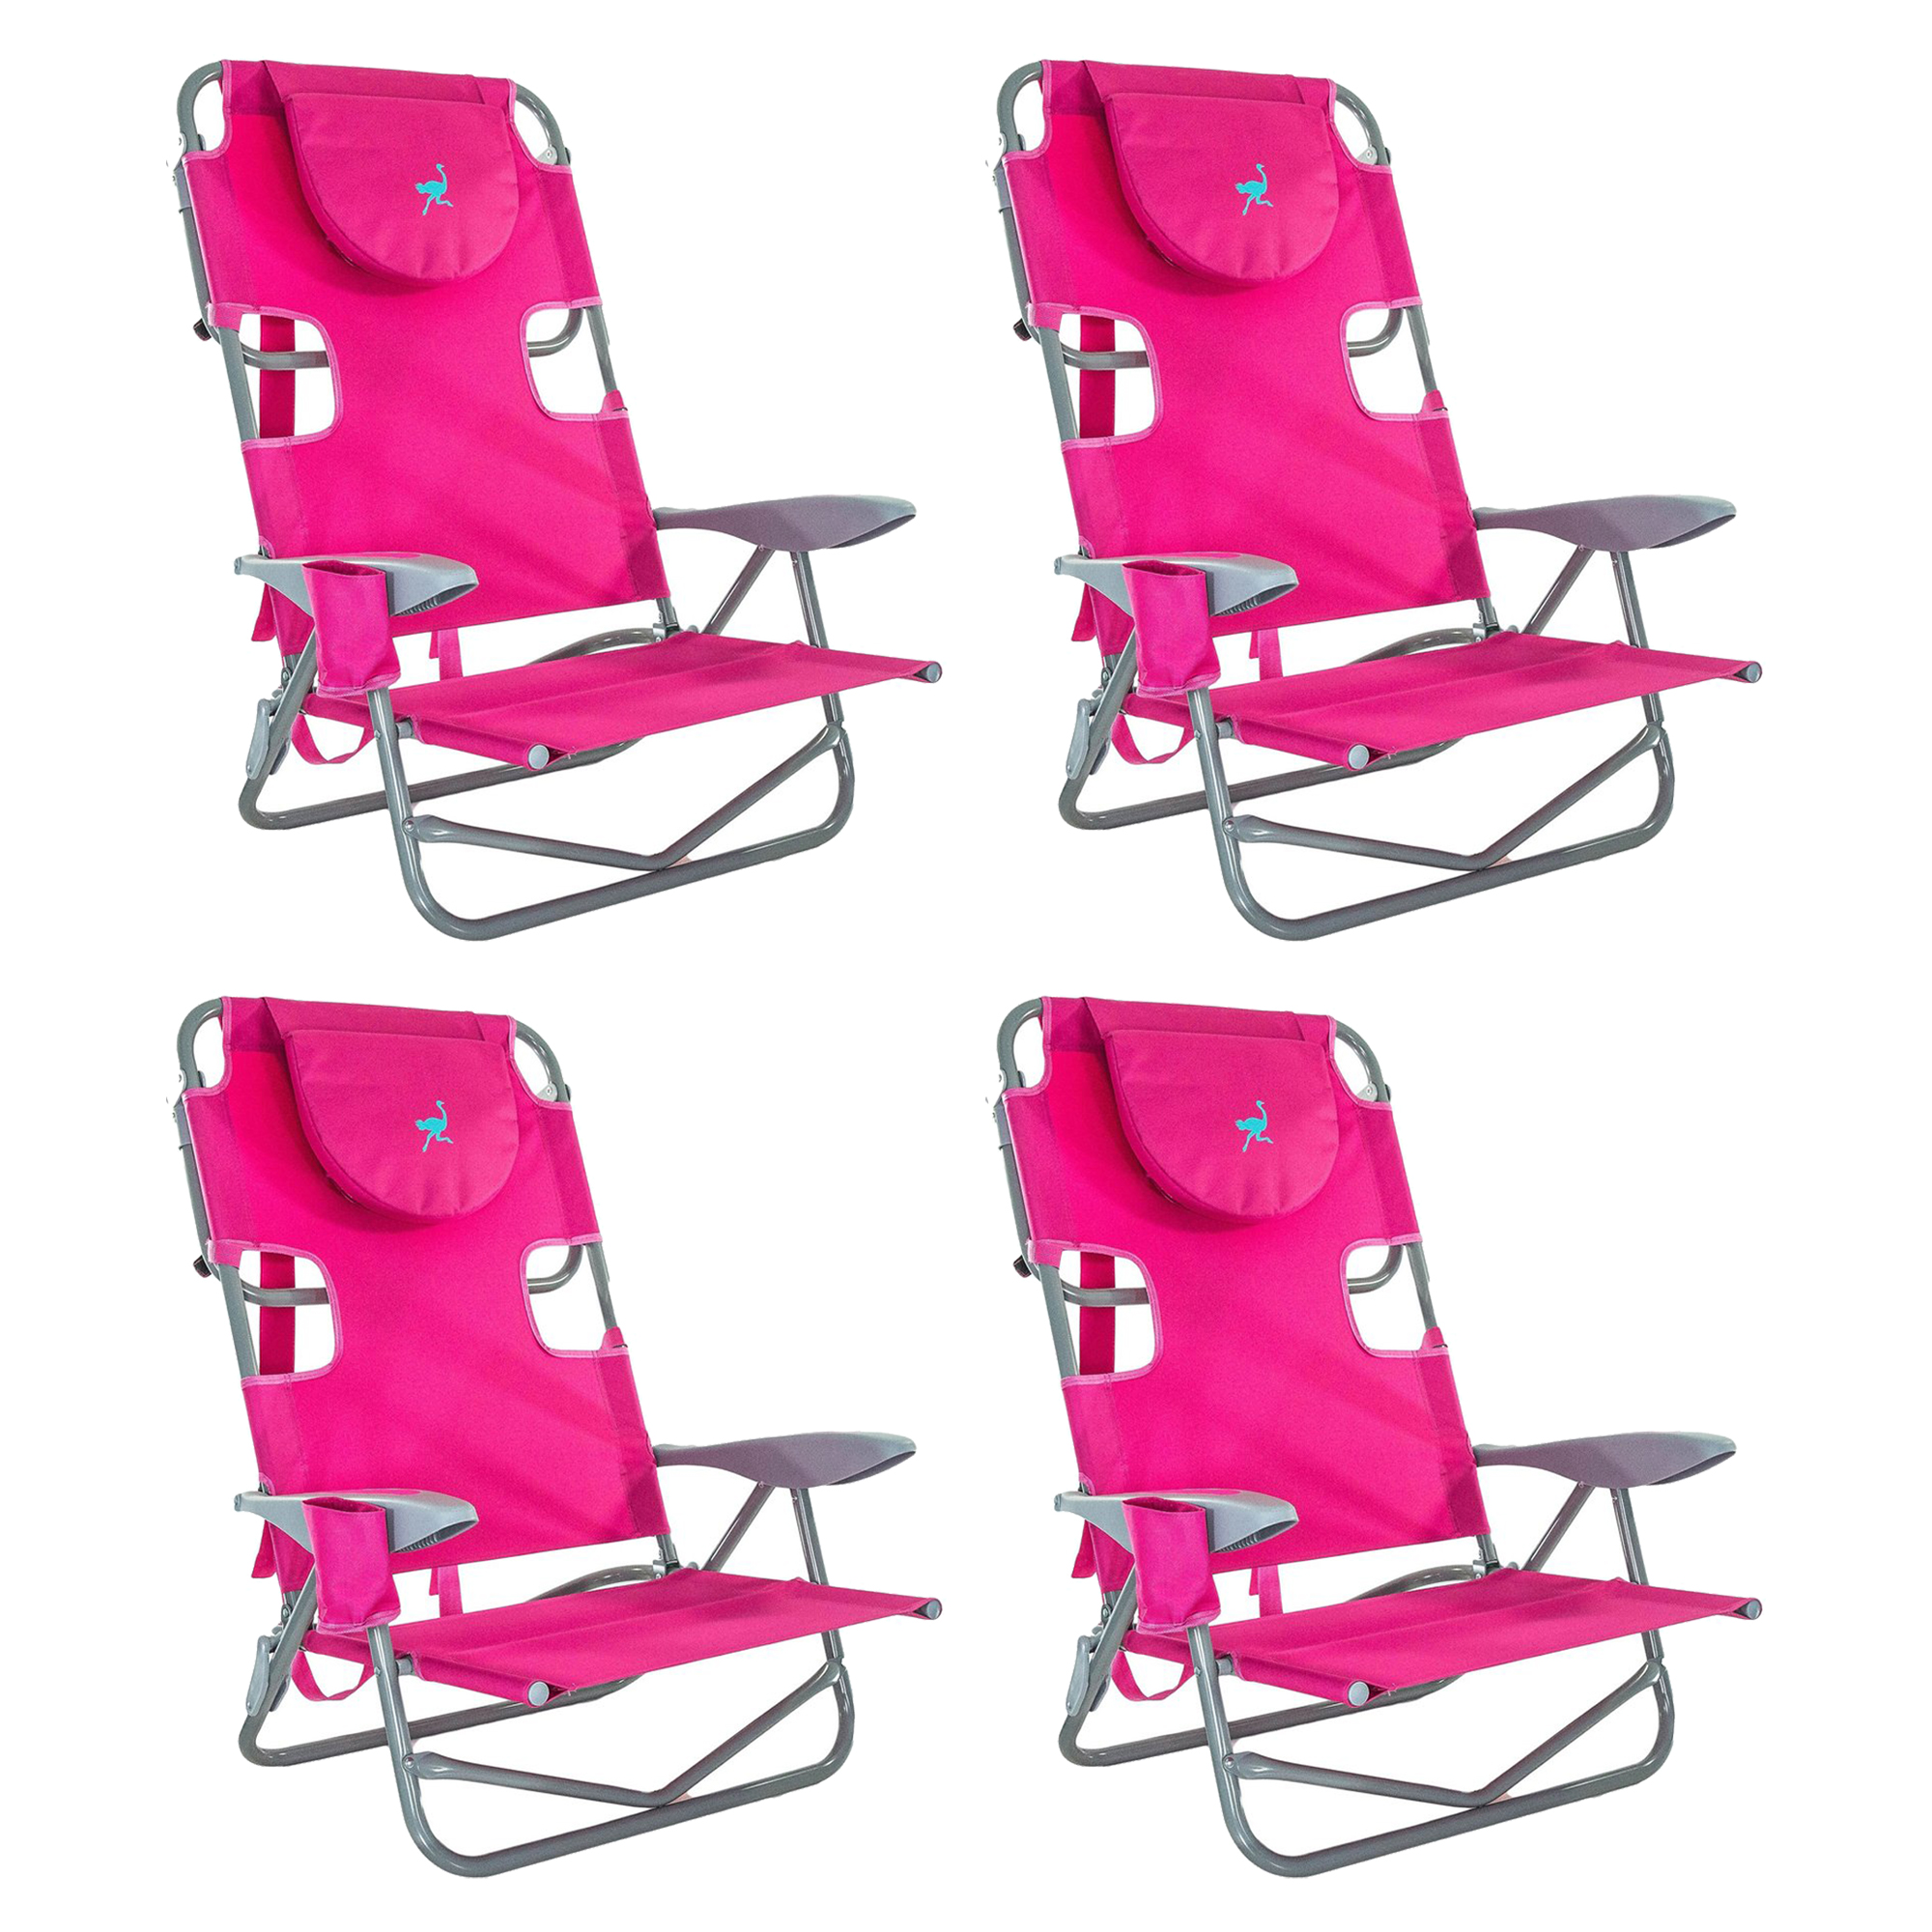 Ostrich On-Your-Back Backpack Beach Chair 5 Position Extra Wide